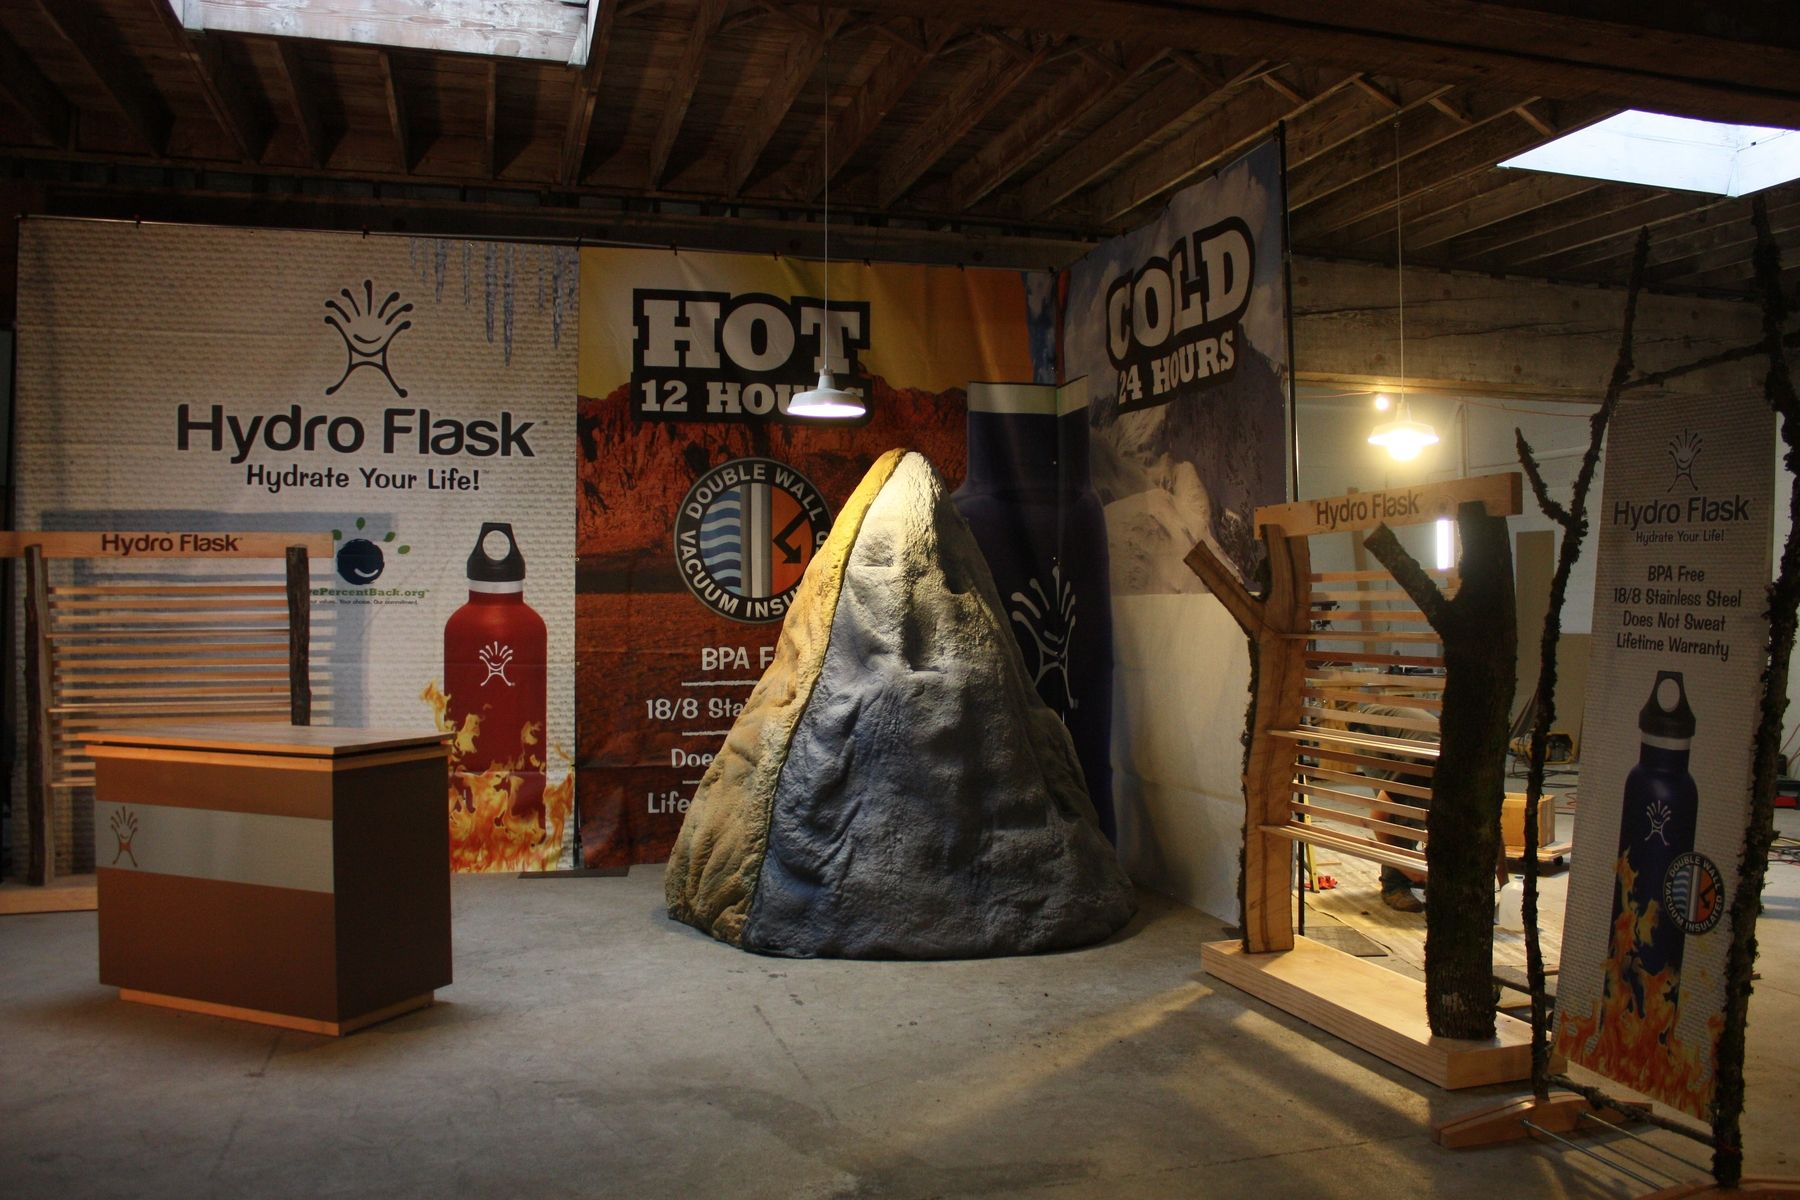 Exhibition Booth Materials : Handmade custom trade show booth for hydroflask re